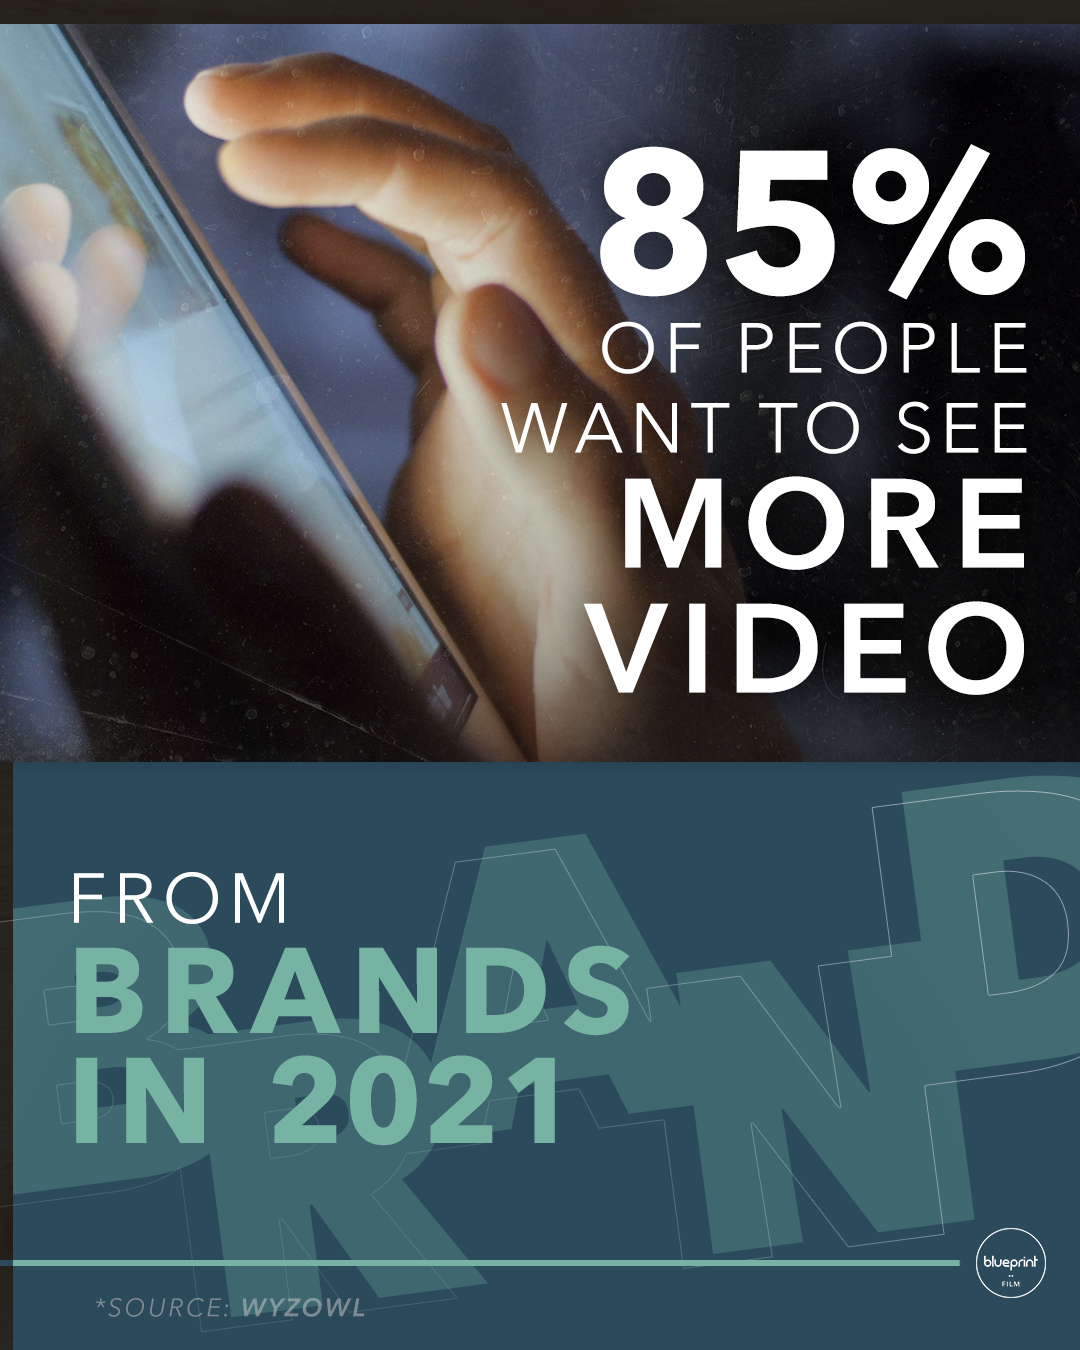 IG Why Video stats infographic repurposing video content